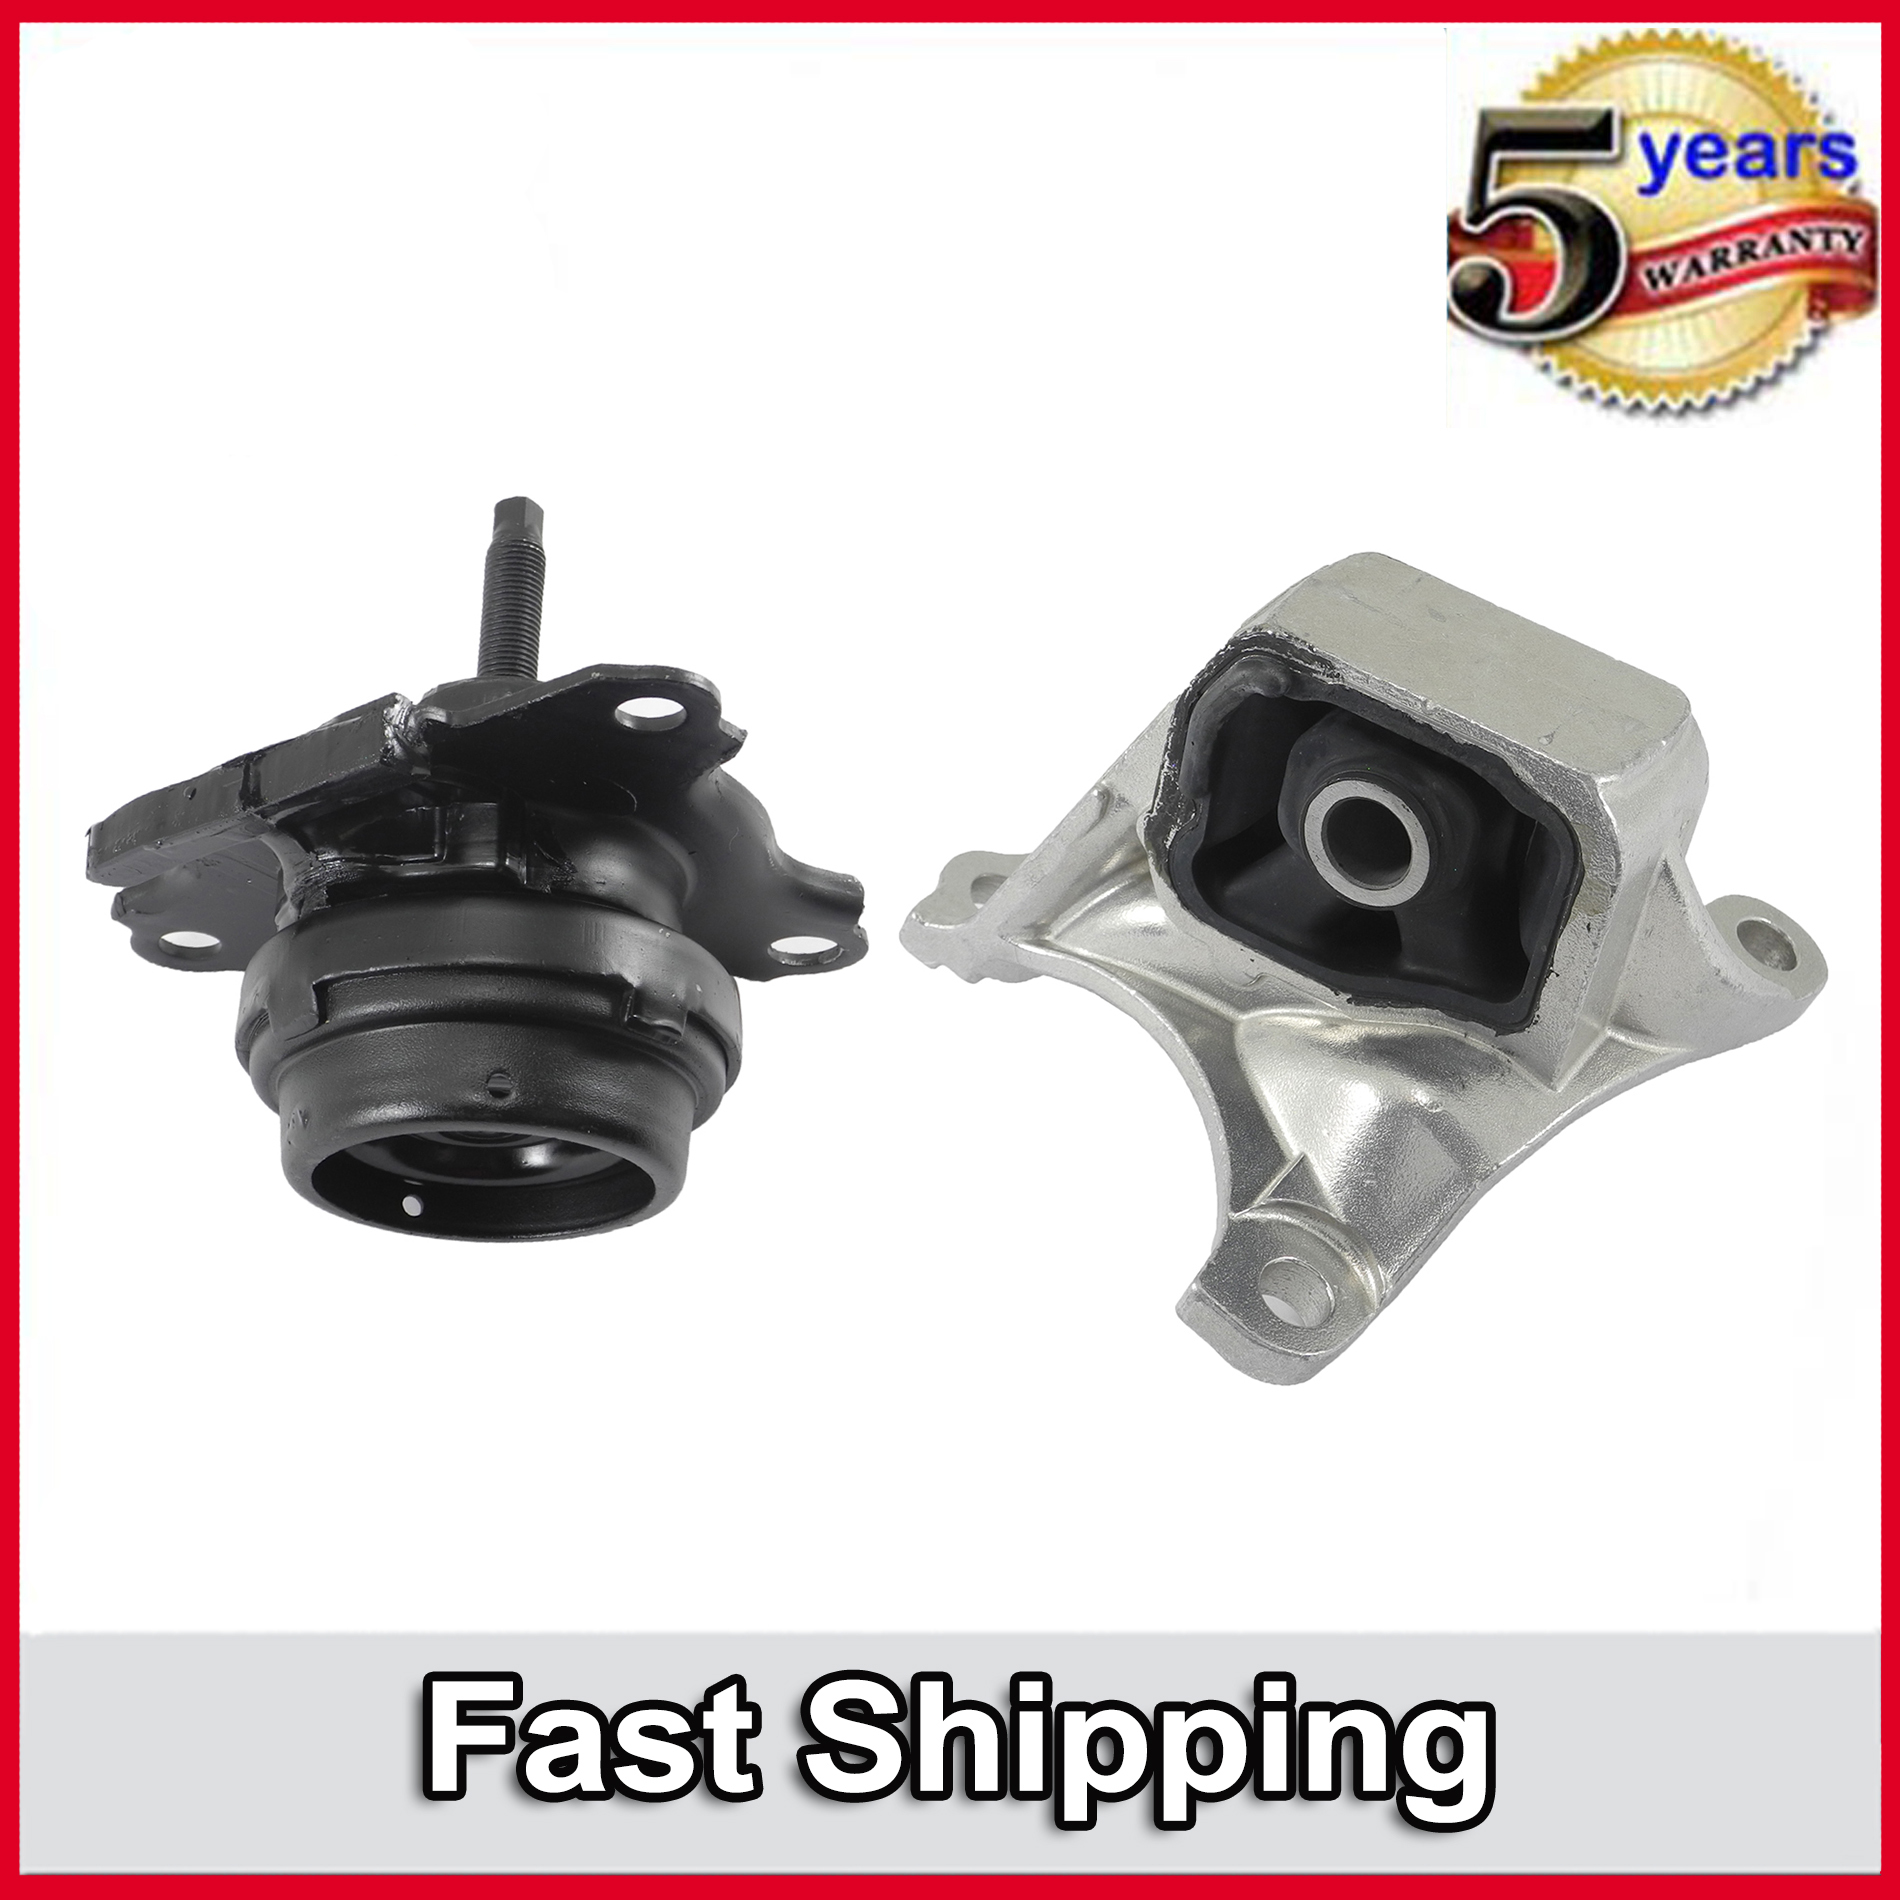 4549 50840S6M010 For 02-06 Honda Civic Acura RSX Front Engine Motor Mount NEW